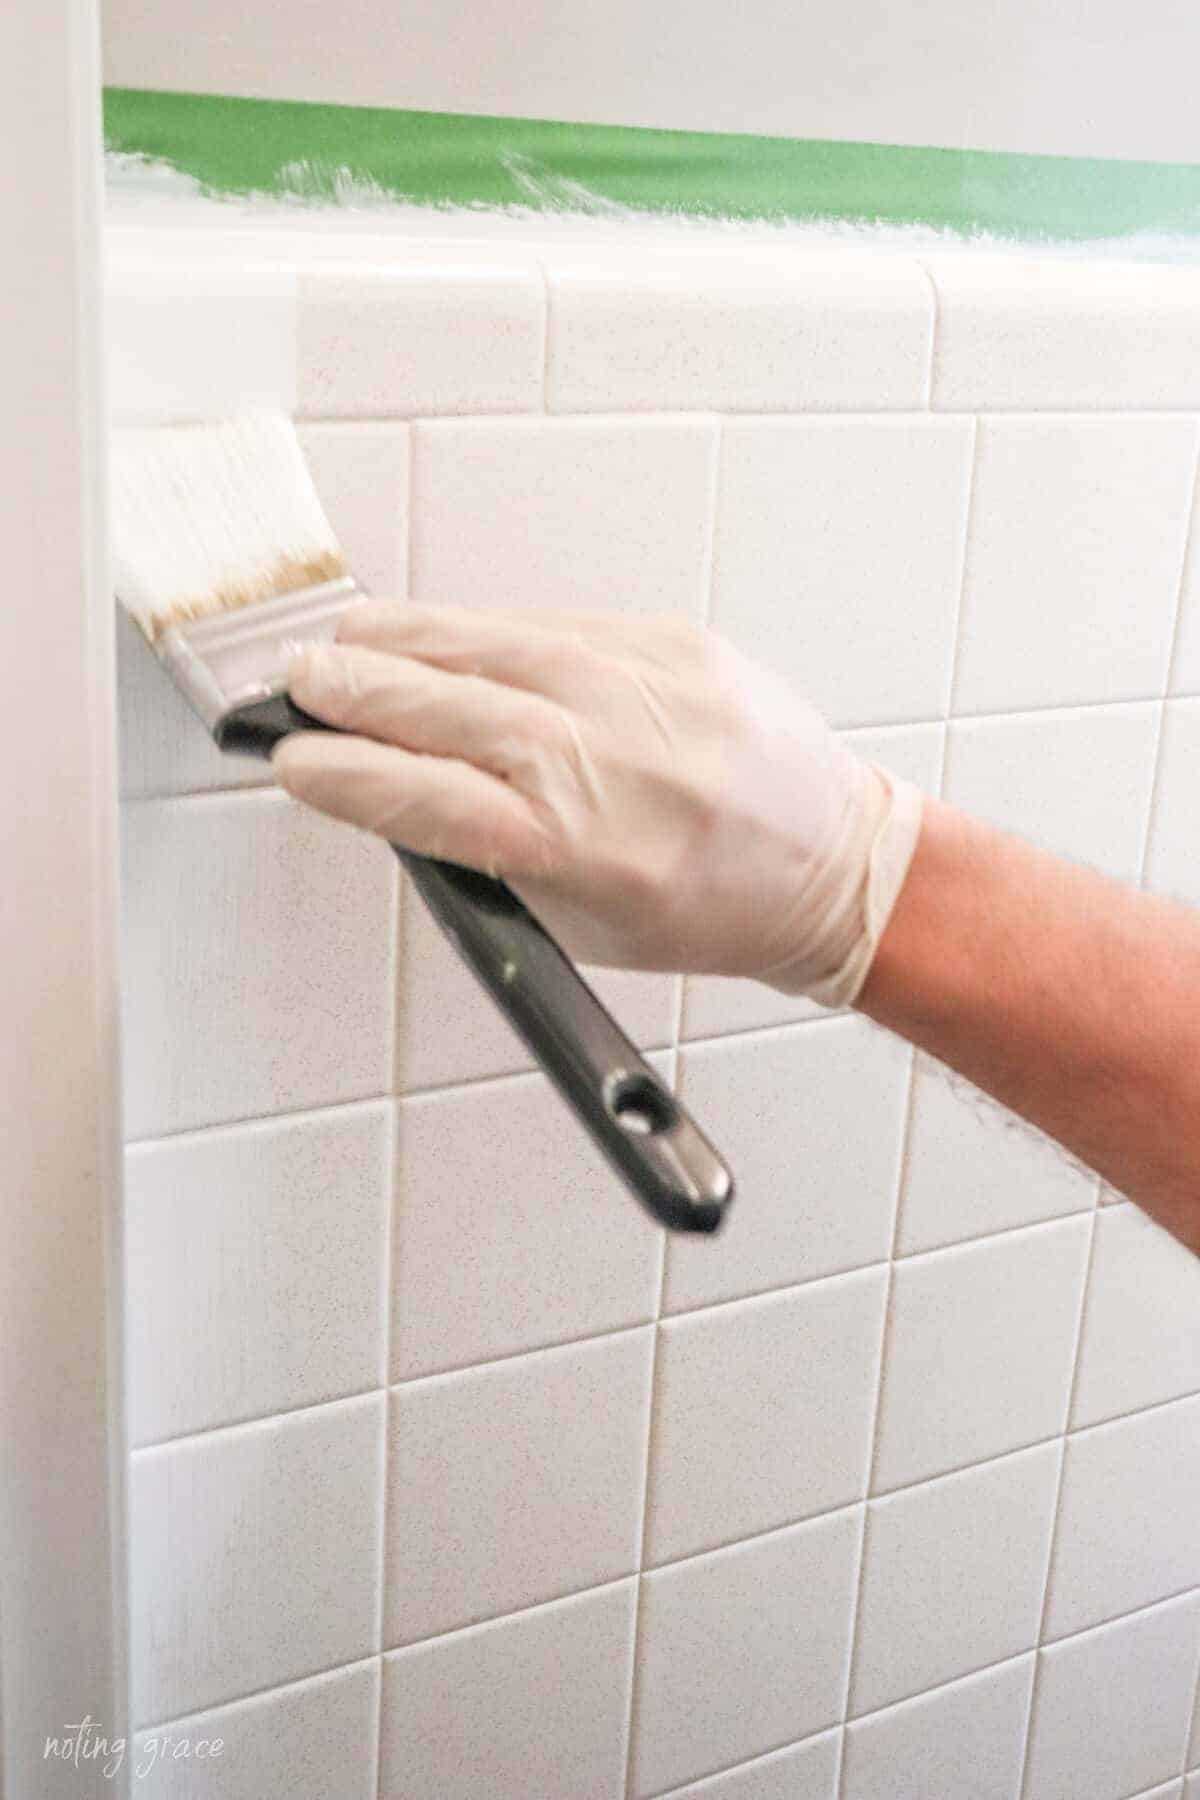 hand painting wall tile using a black handled brush